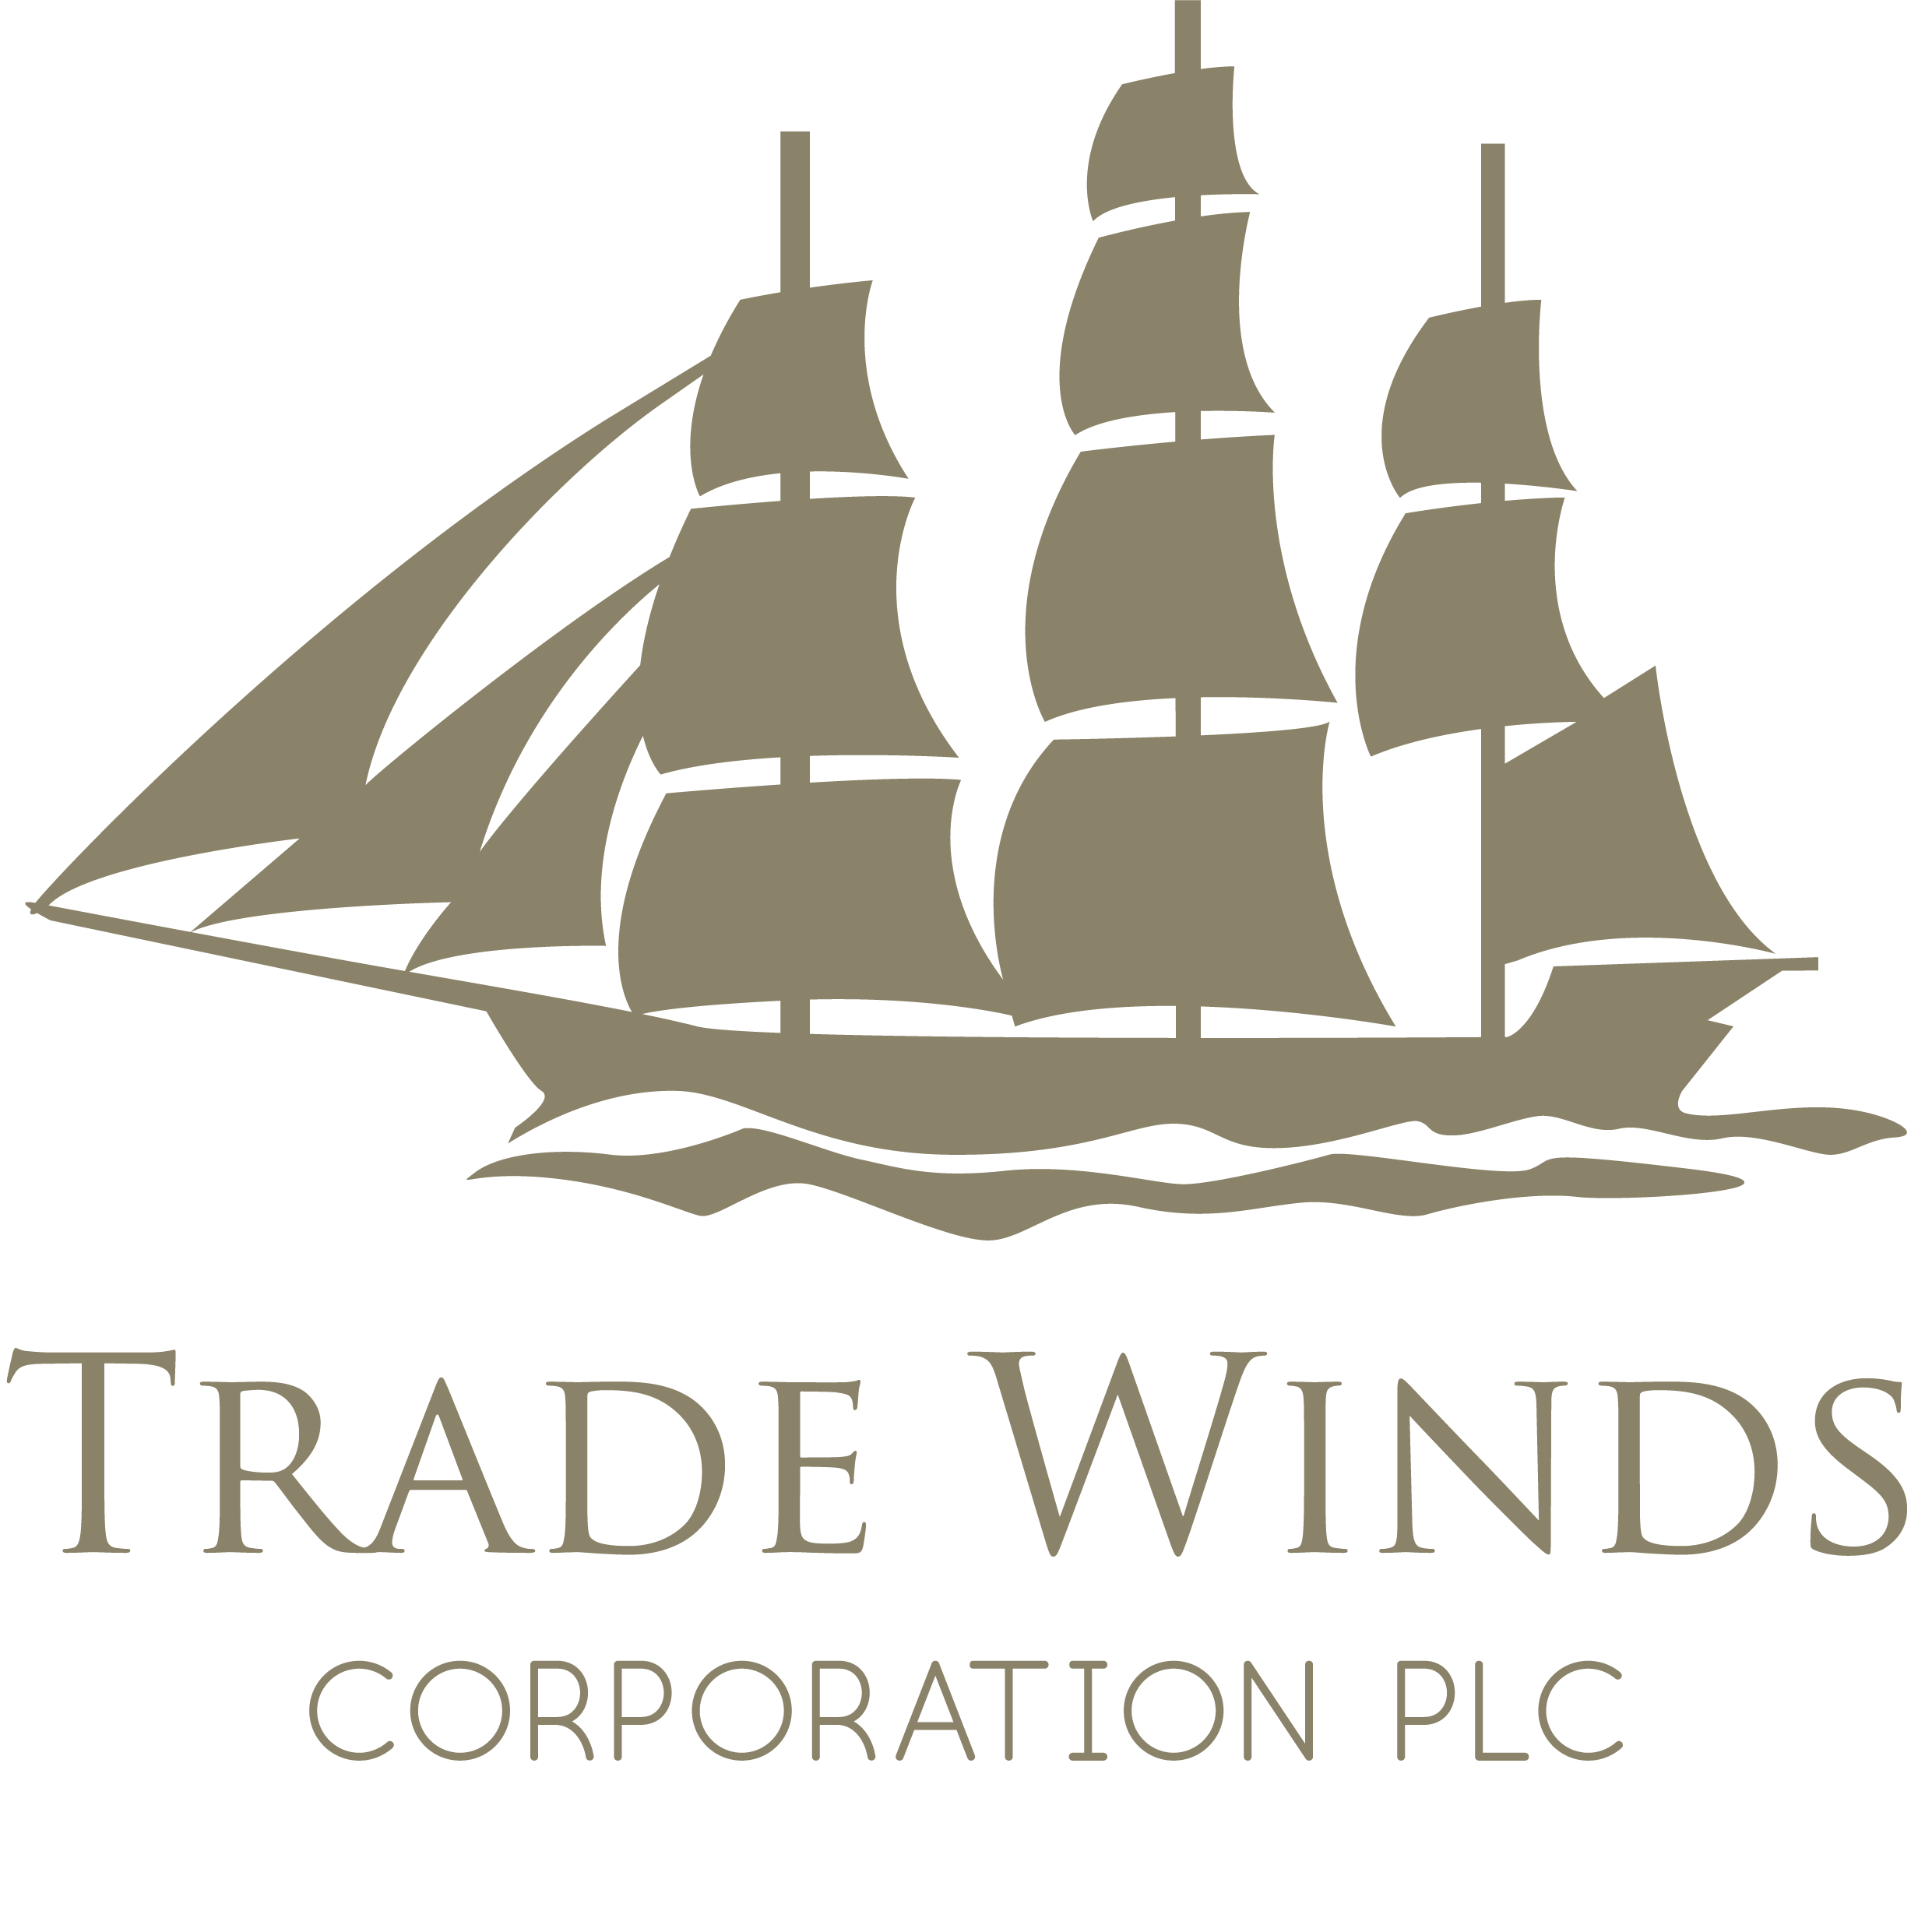 Trade Winds Corporation PLC